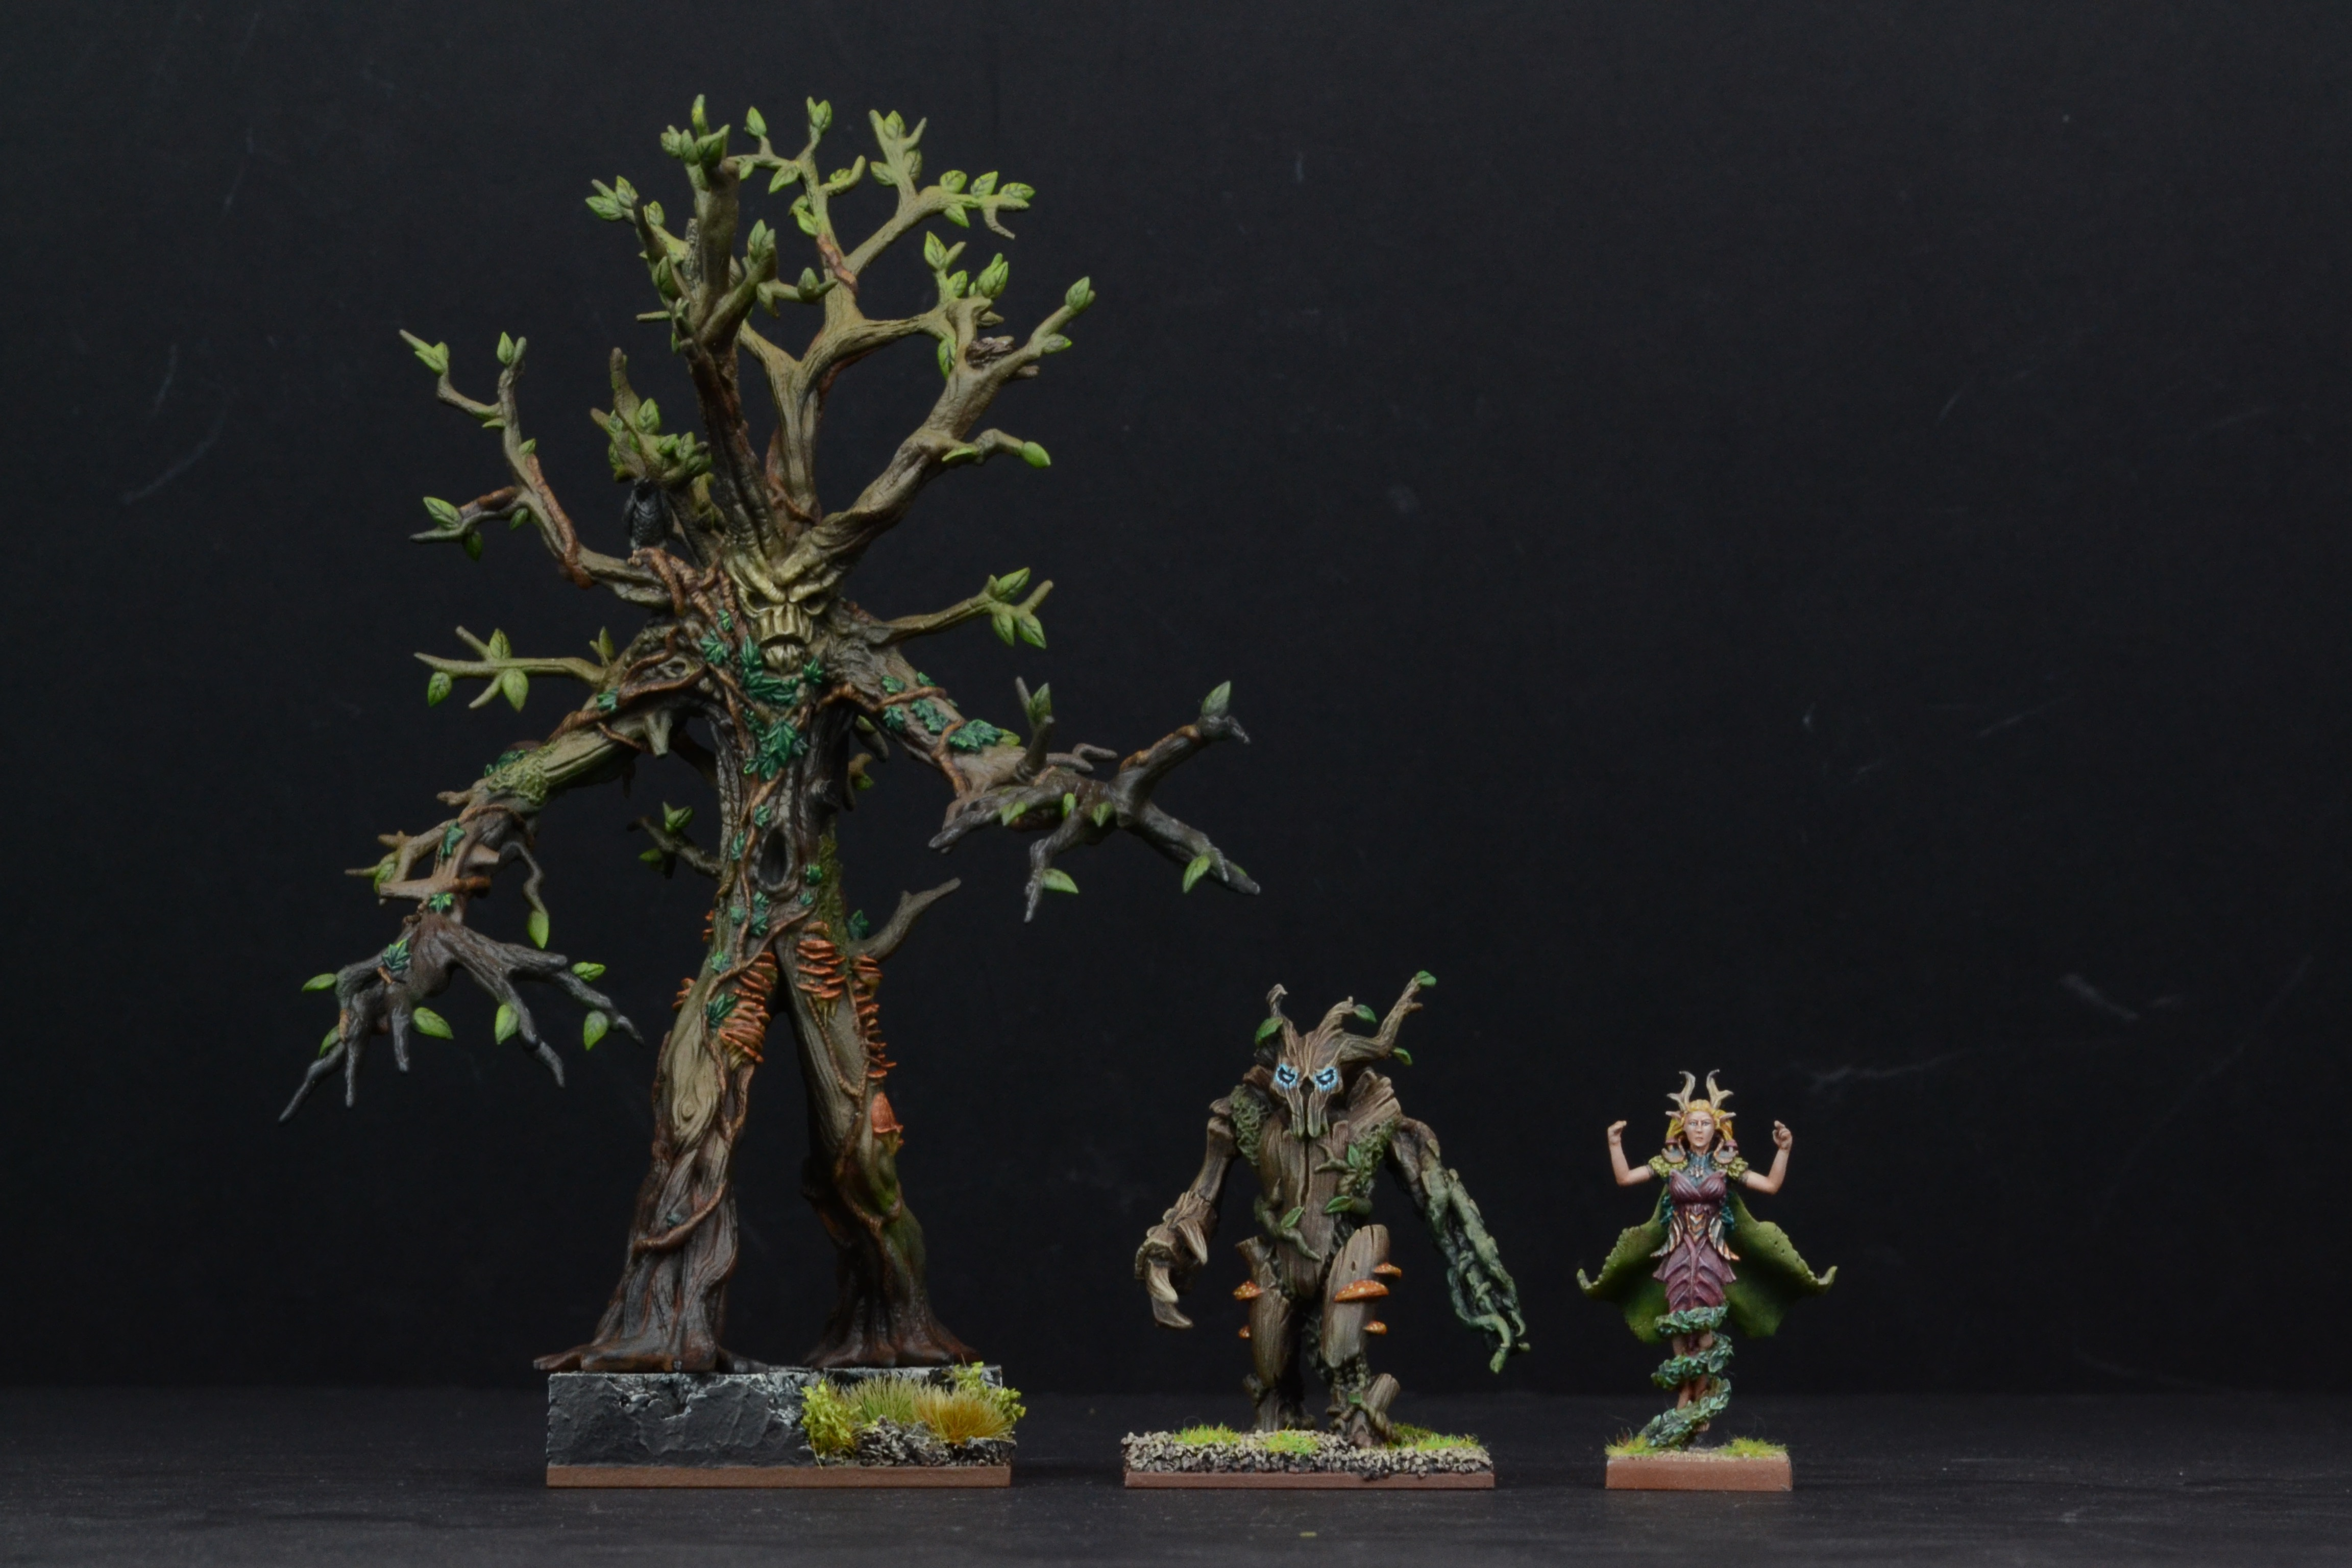 Tree Herder size comparison